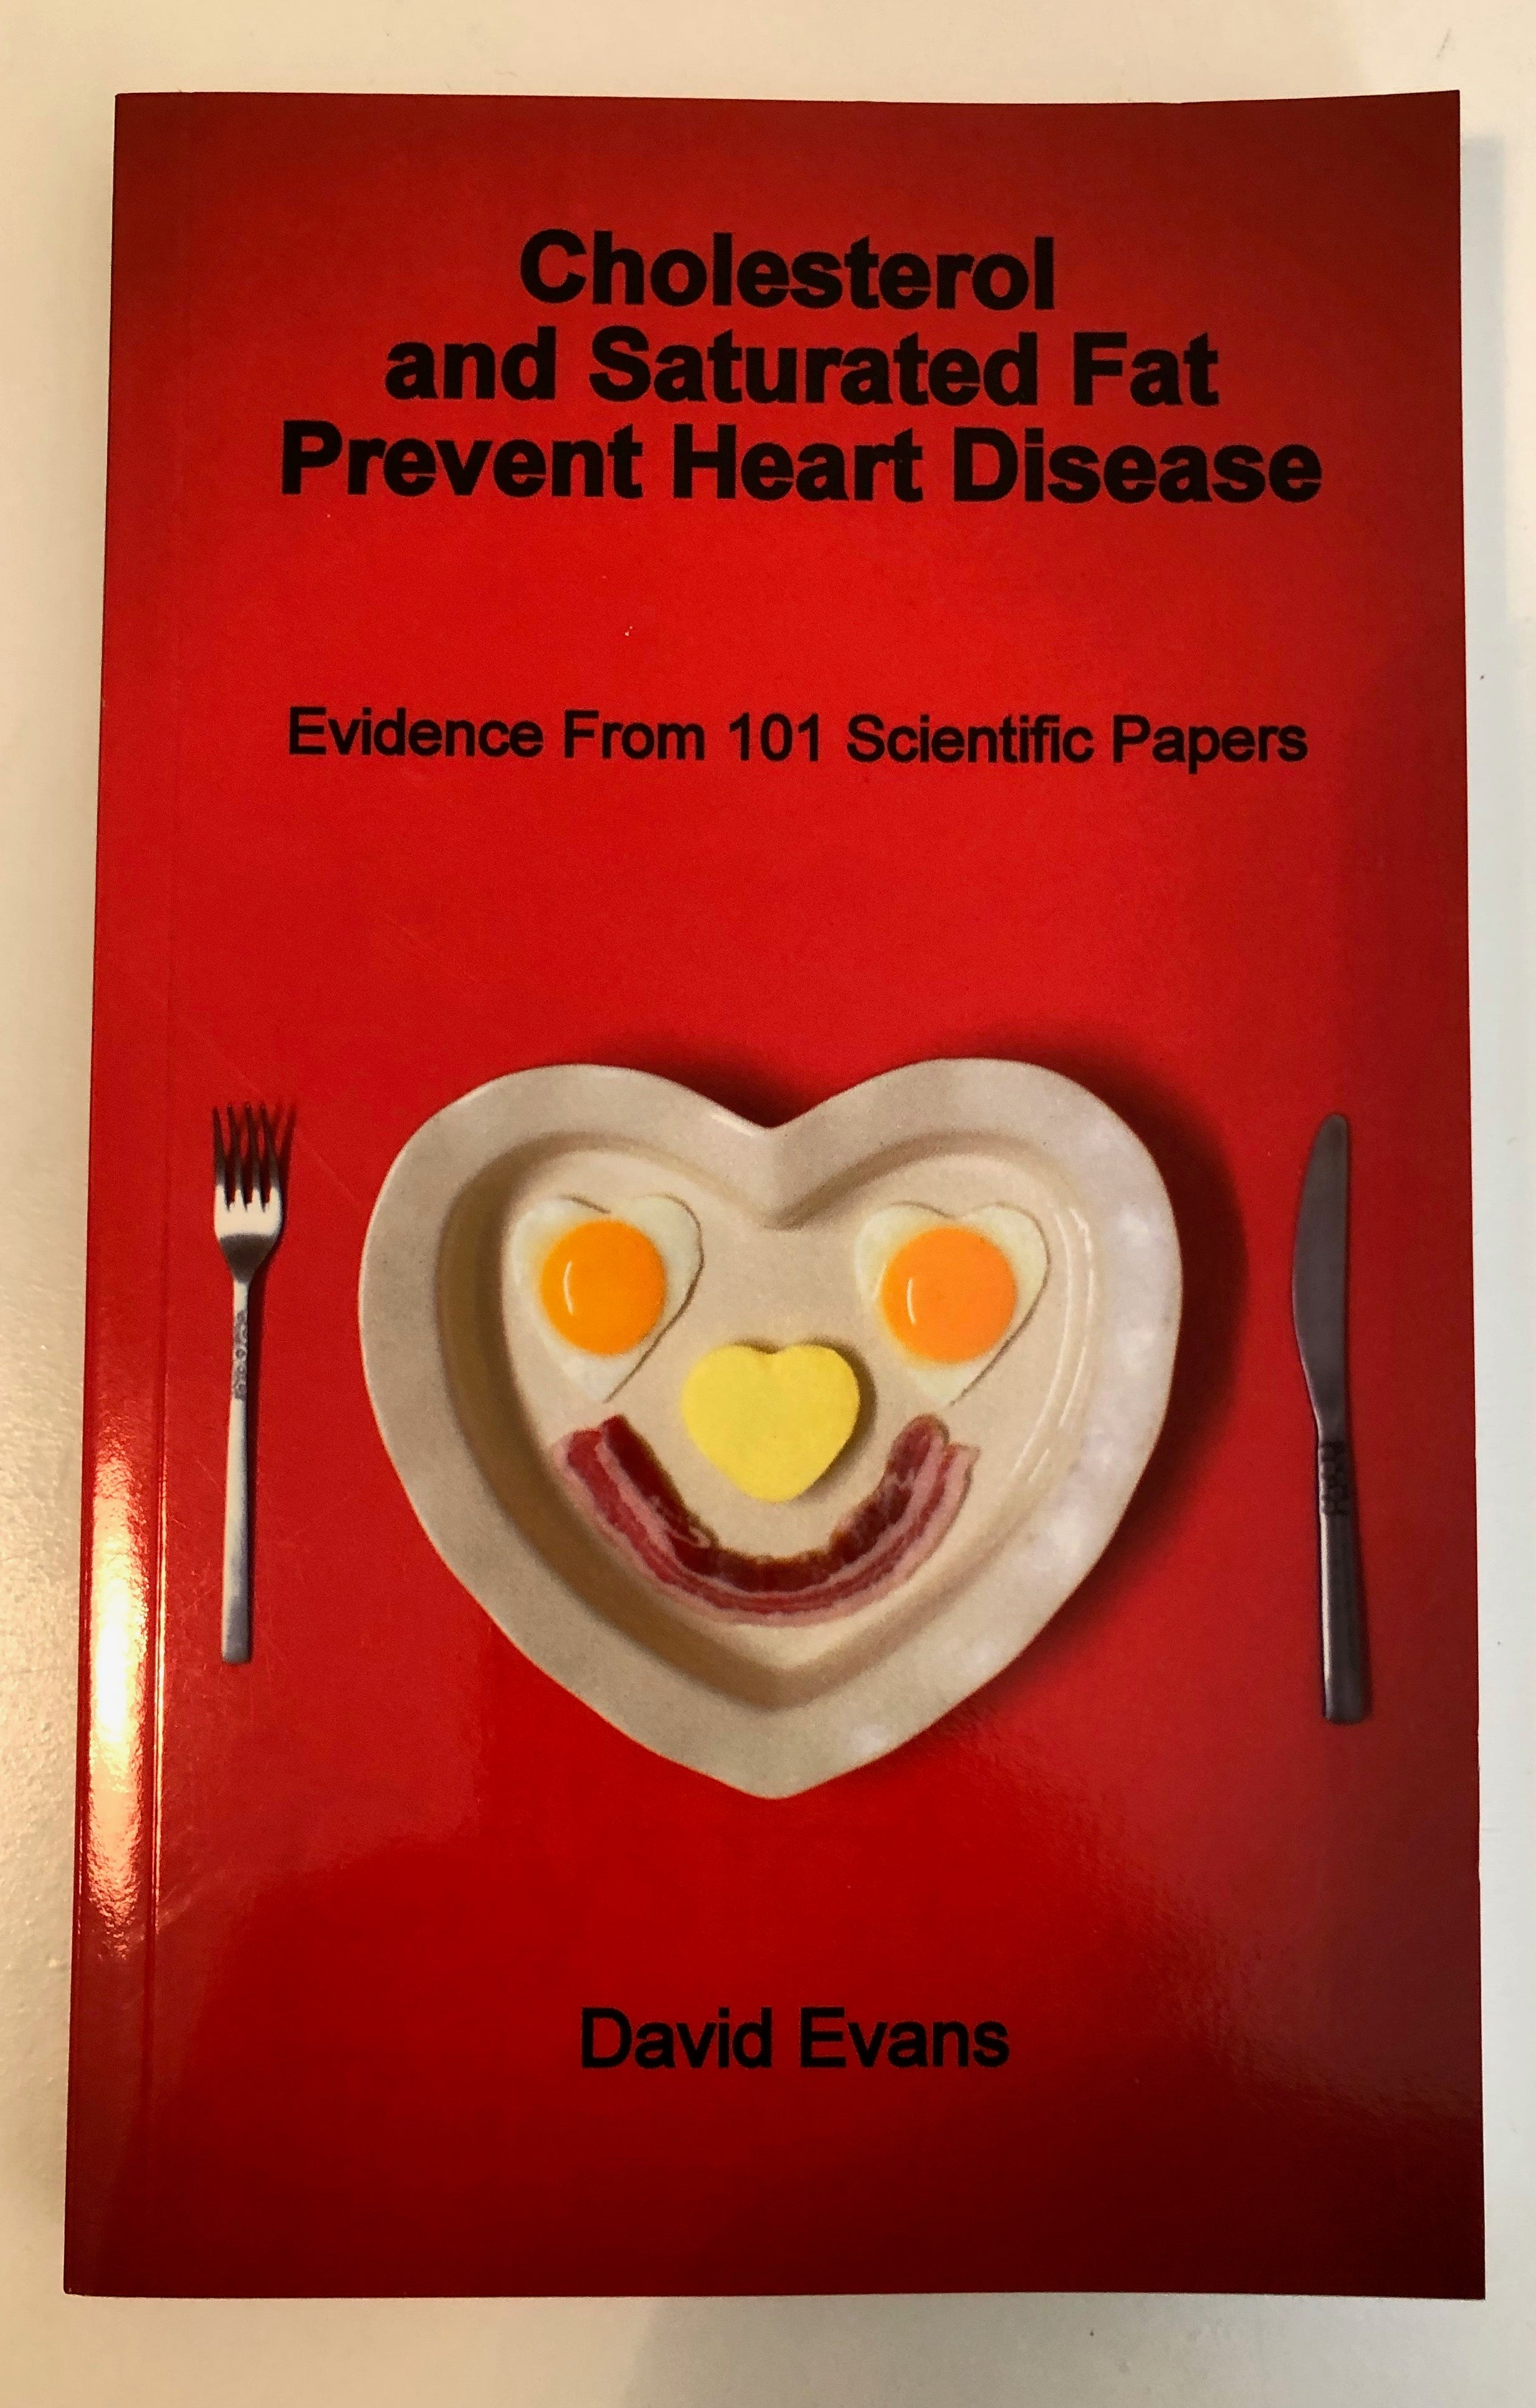 Cholesterol and Saturated Fat Prevent Heart Disease - Evidence from 101 Scientific Papers - David Evans